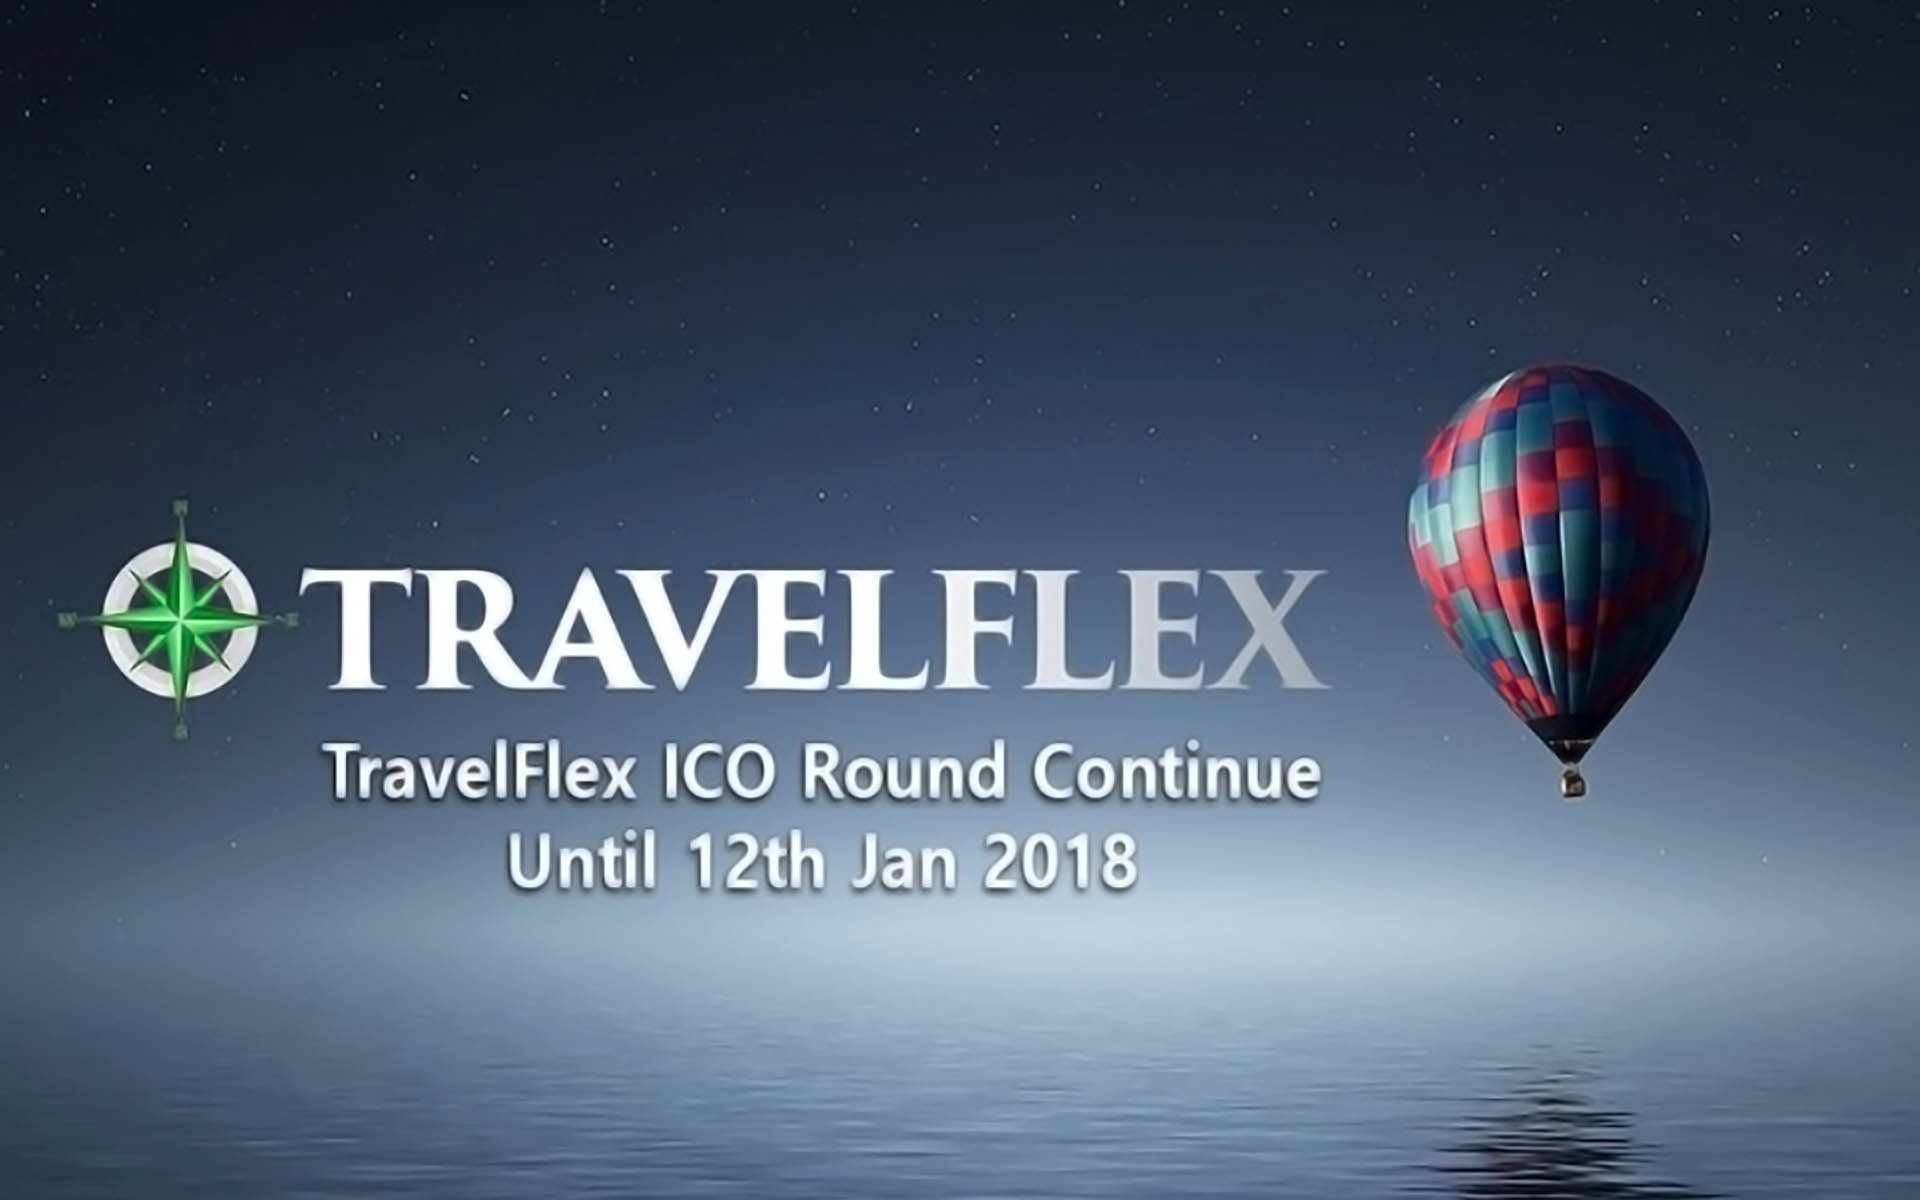 TravelFlex ICO Round Continue Until 12th Jan 2018